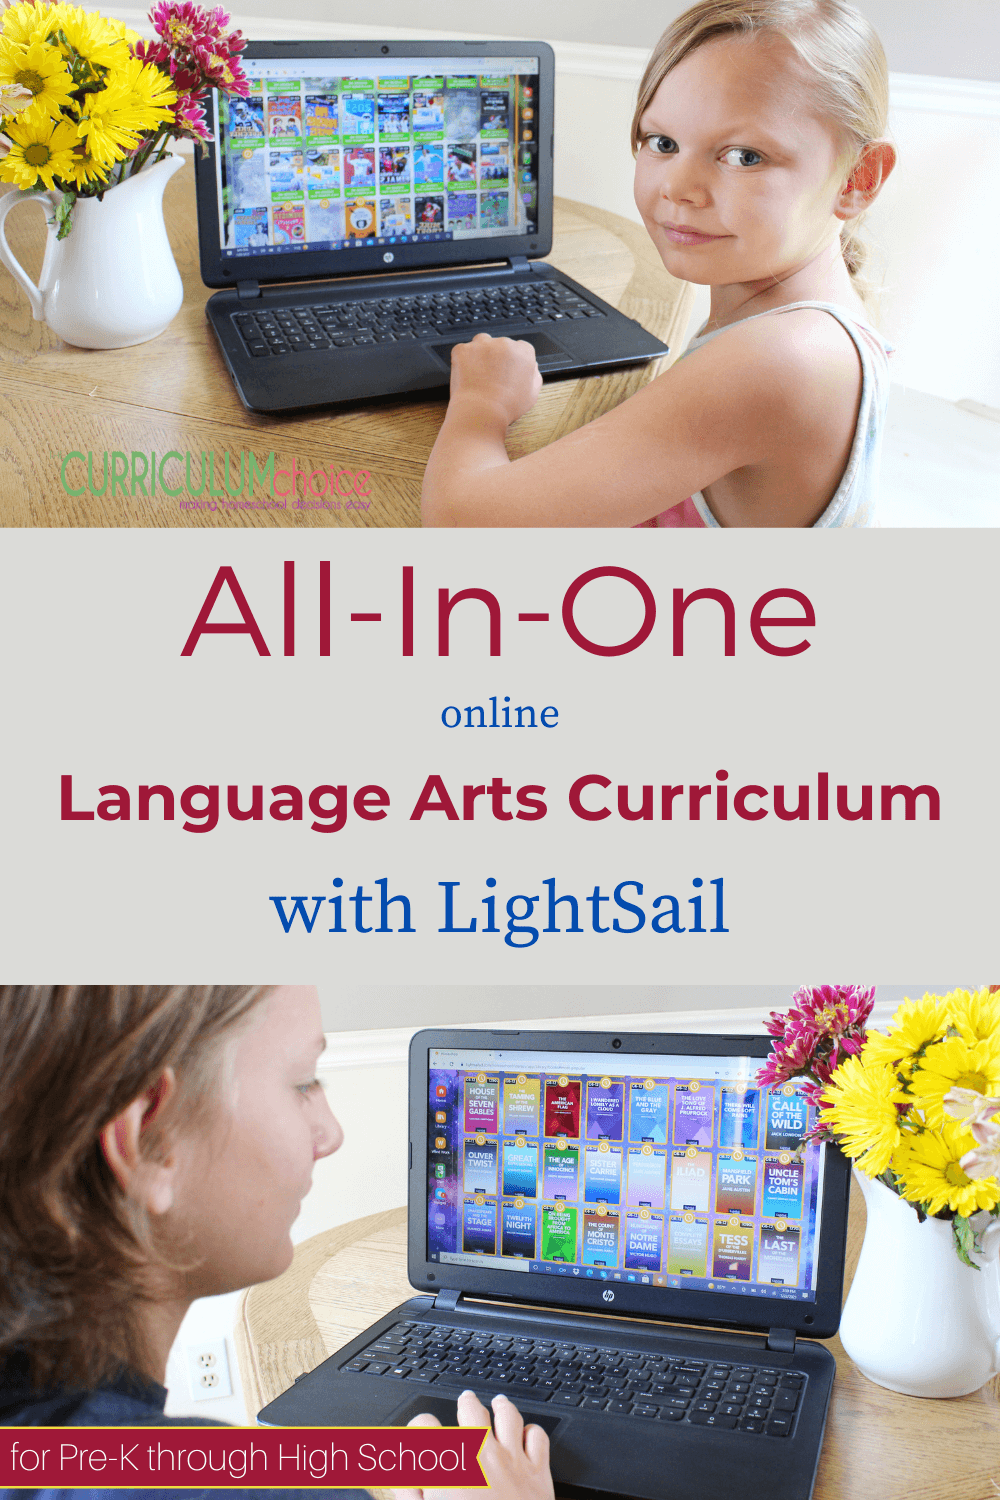 All-In-One Online Language Arts Curriculum with LightSail: An online language arts curriculum is no longer a mythical unicorn in the homeschool world. Now you can combine reading, writing, vocabulary, and fluency for pre-K through high school, all with one unique online program! #LightSail #languagearts #onlinelanguagearts #languageartscurriculum #review #homeschool #onlinecurriculum